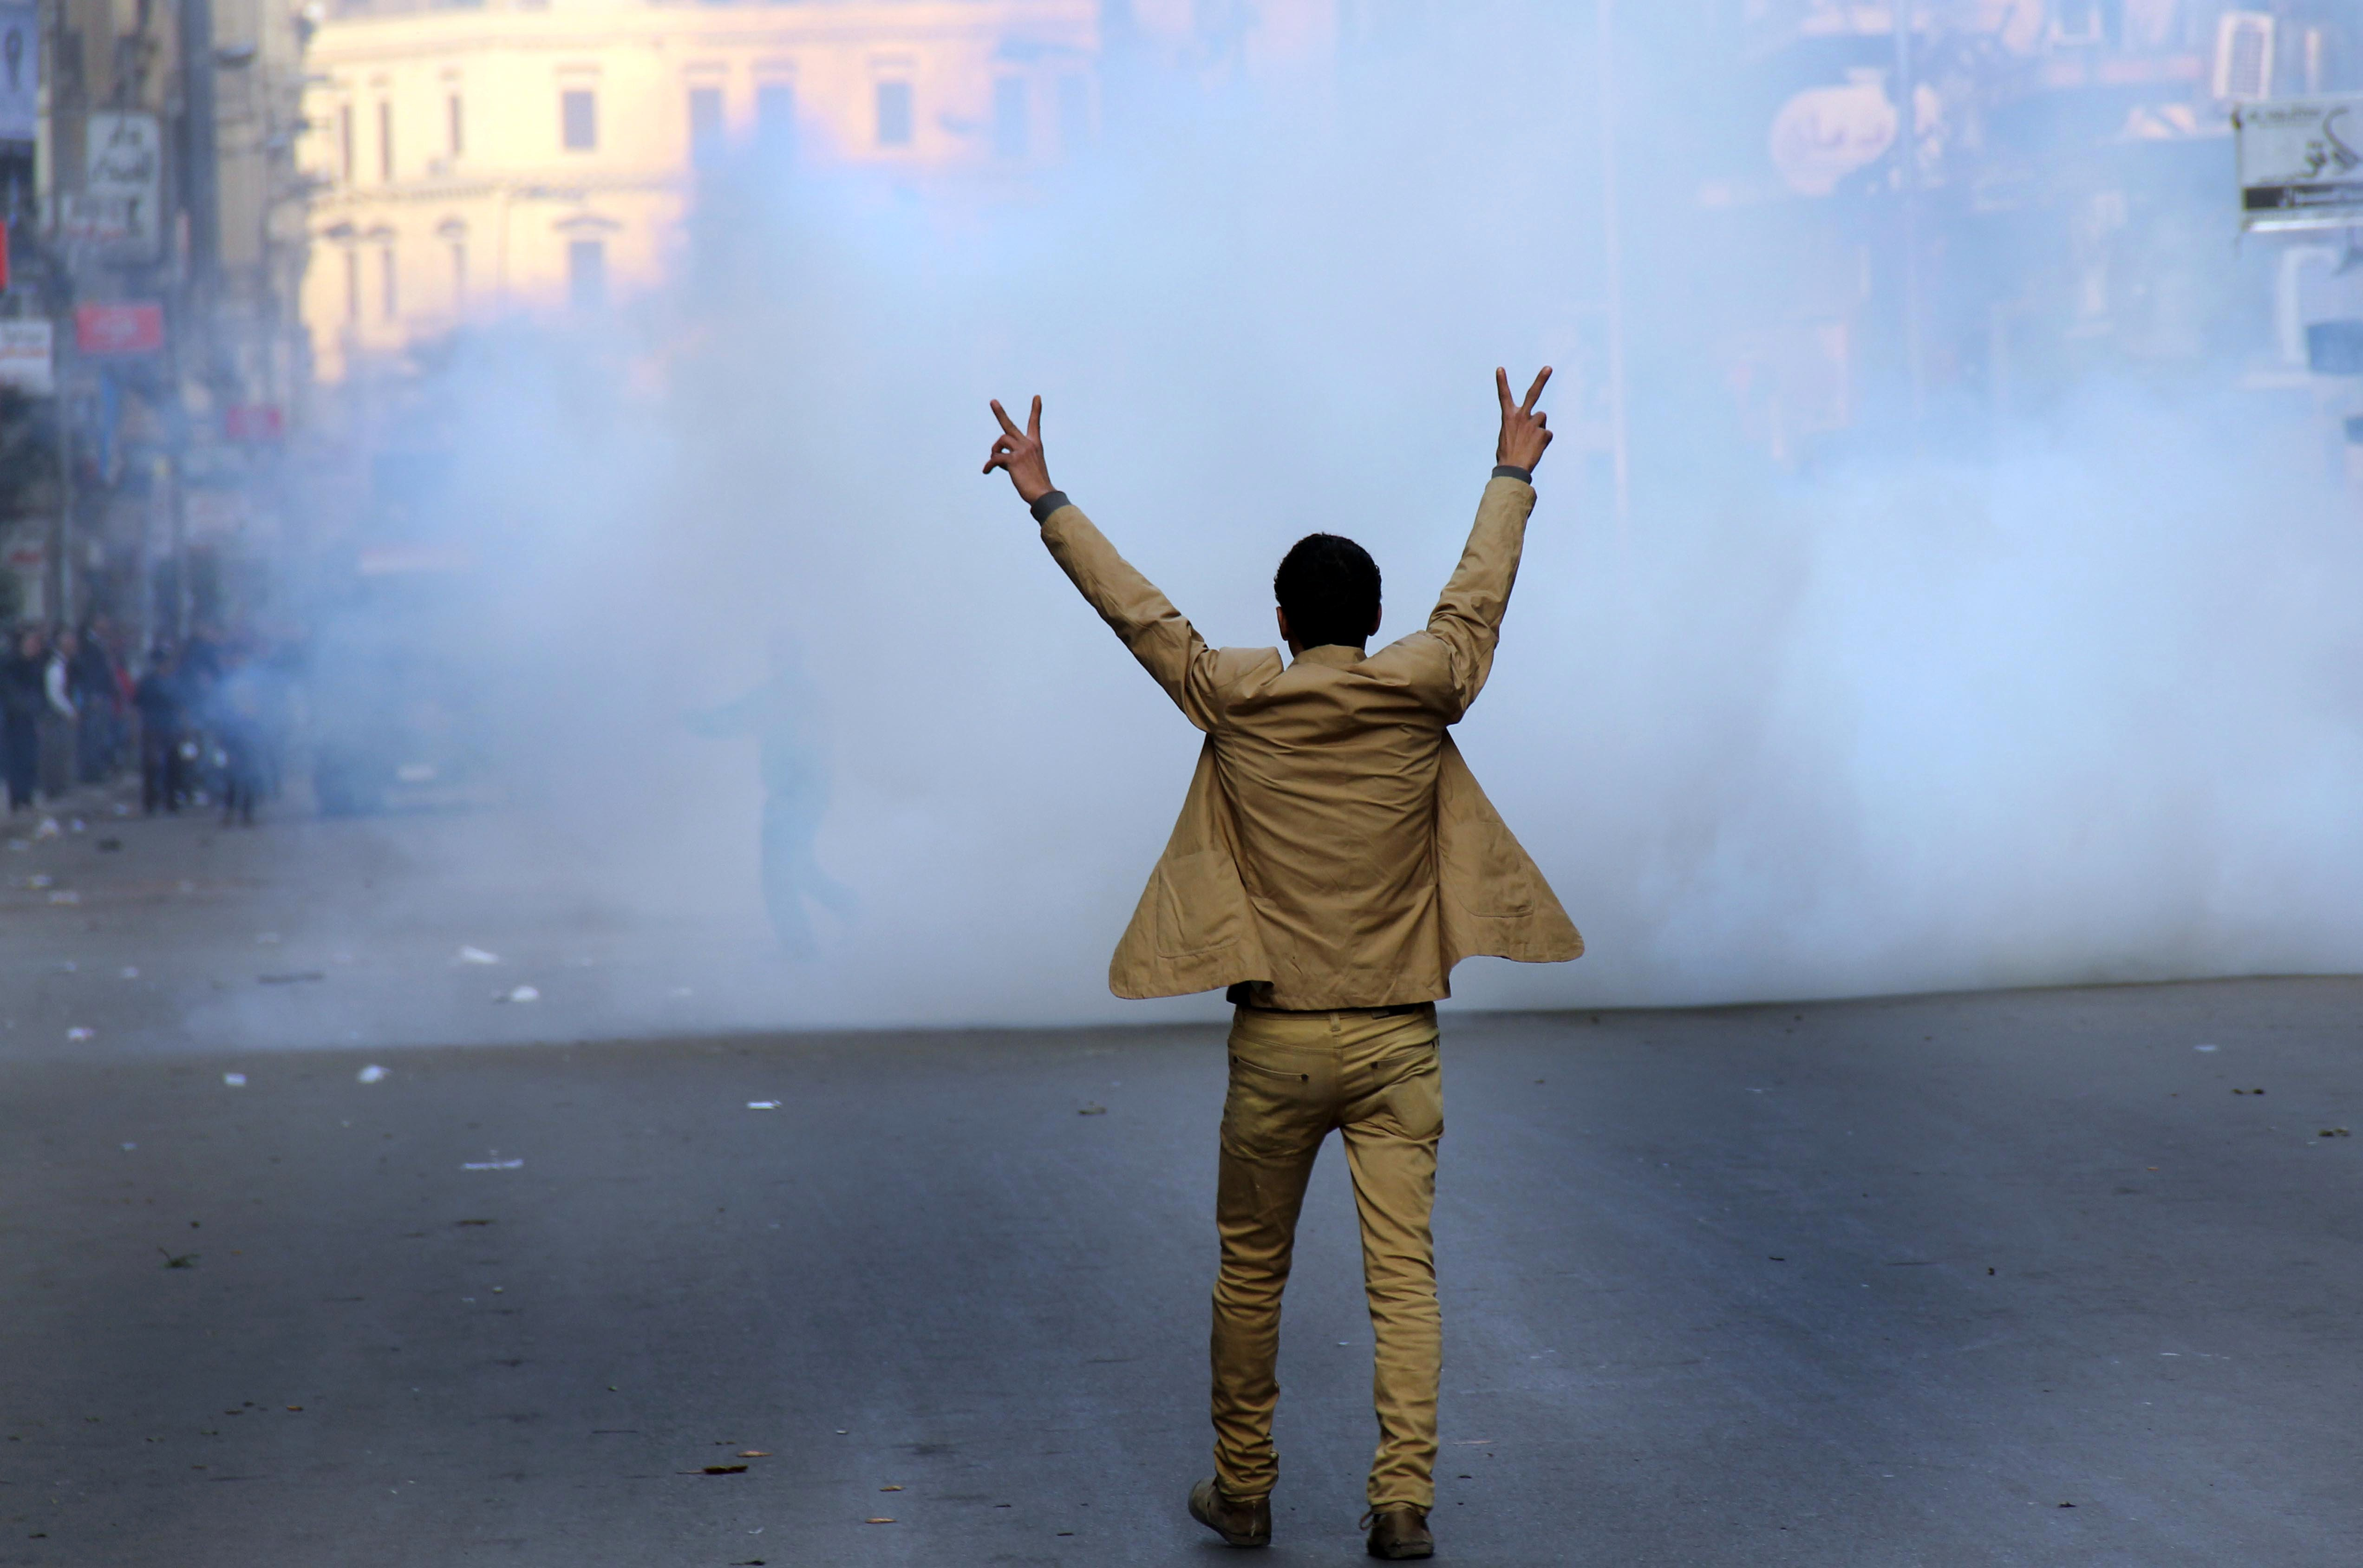 A supporter of the Egyptian government flashes the sign for victory during clashes with Muslim Brotherhood supporters (background) in Cairo on January 25, 2014. Deadly clashes erupted in Egypt Saturday as rival demonstrations were held on the anniversary of the 2011 revolt that toppled Hosni Mubarak, underscoring the country's violent polarisation three years after the Arab Spring.  (AFP PHOTO/AHMED TARANH)